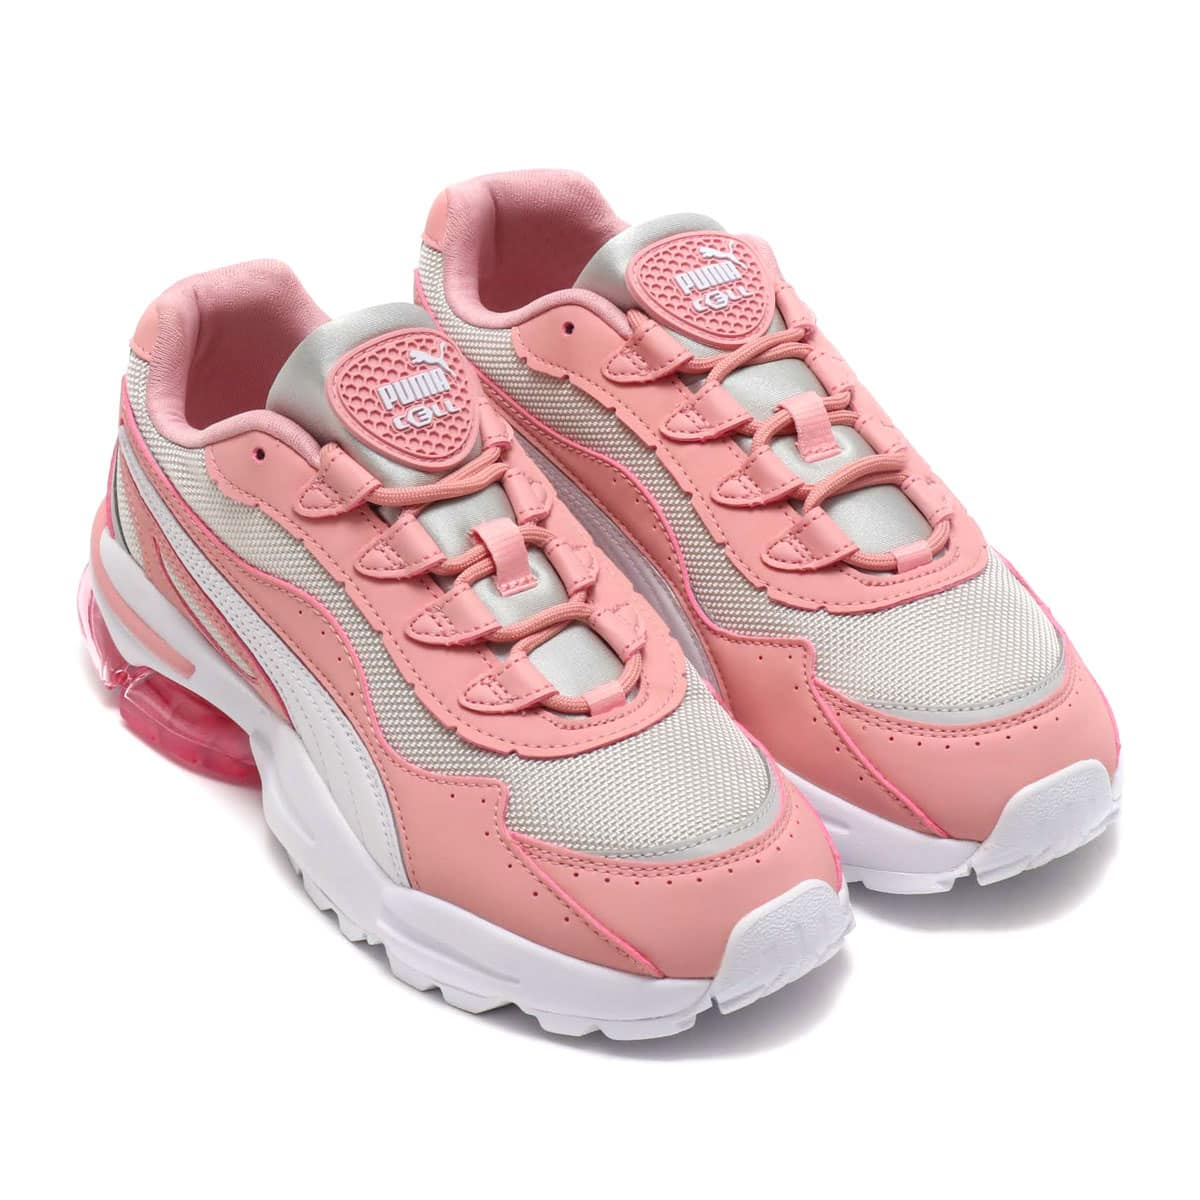 PUMA CELL STELLAR WMNS BRIDAL ROSE-G 19FA-S_photo_large